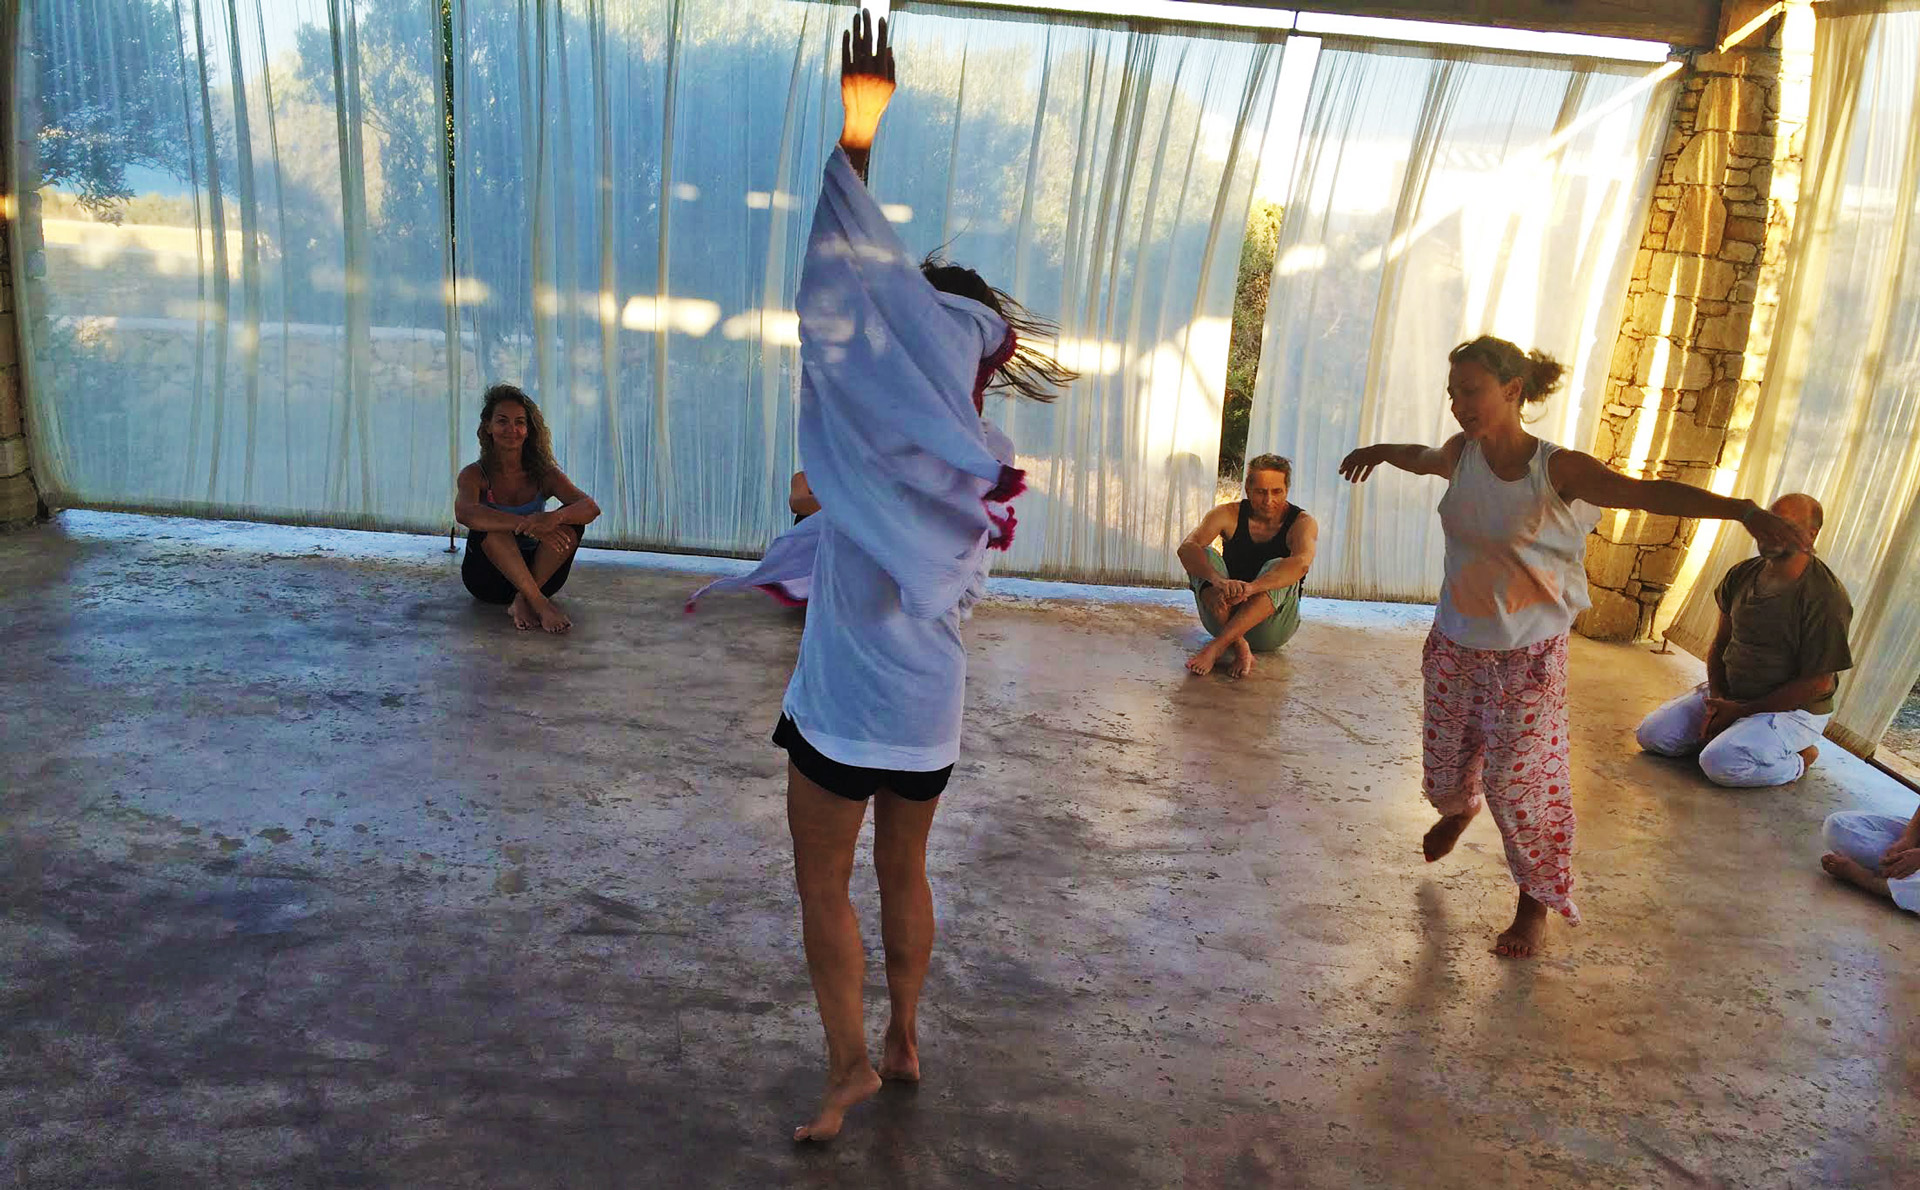 Spirit Contact Dance practice with Apostolia Papadamaki